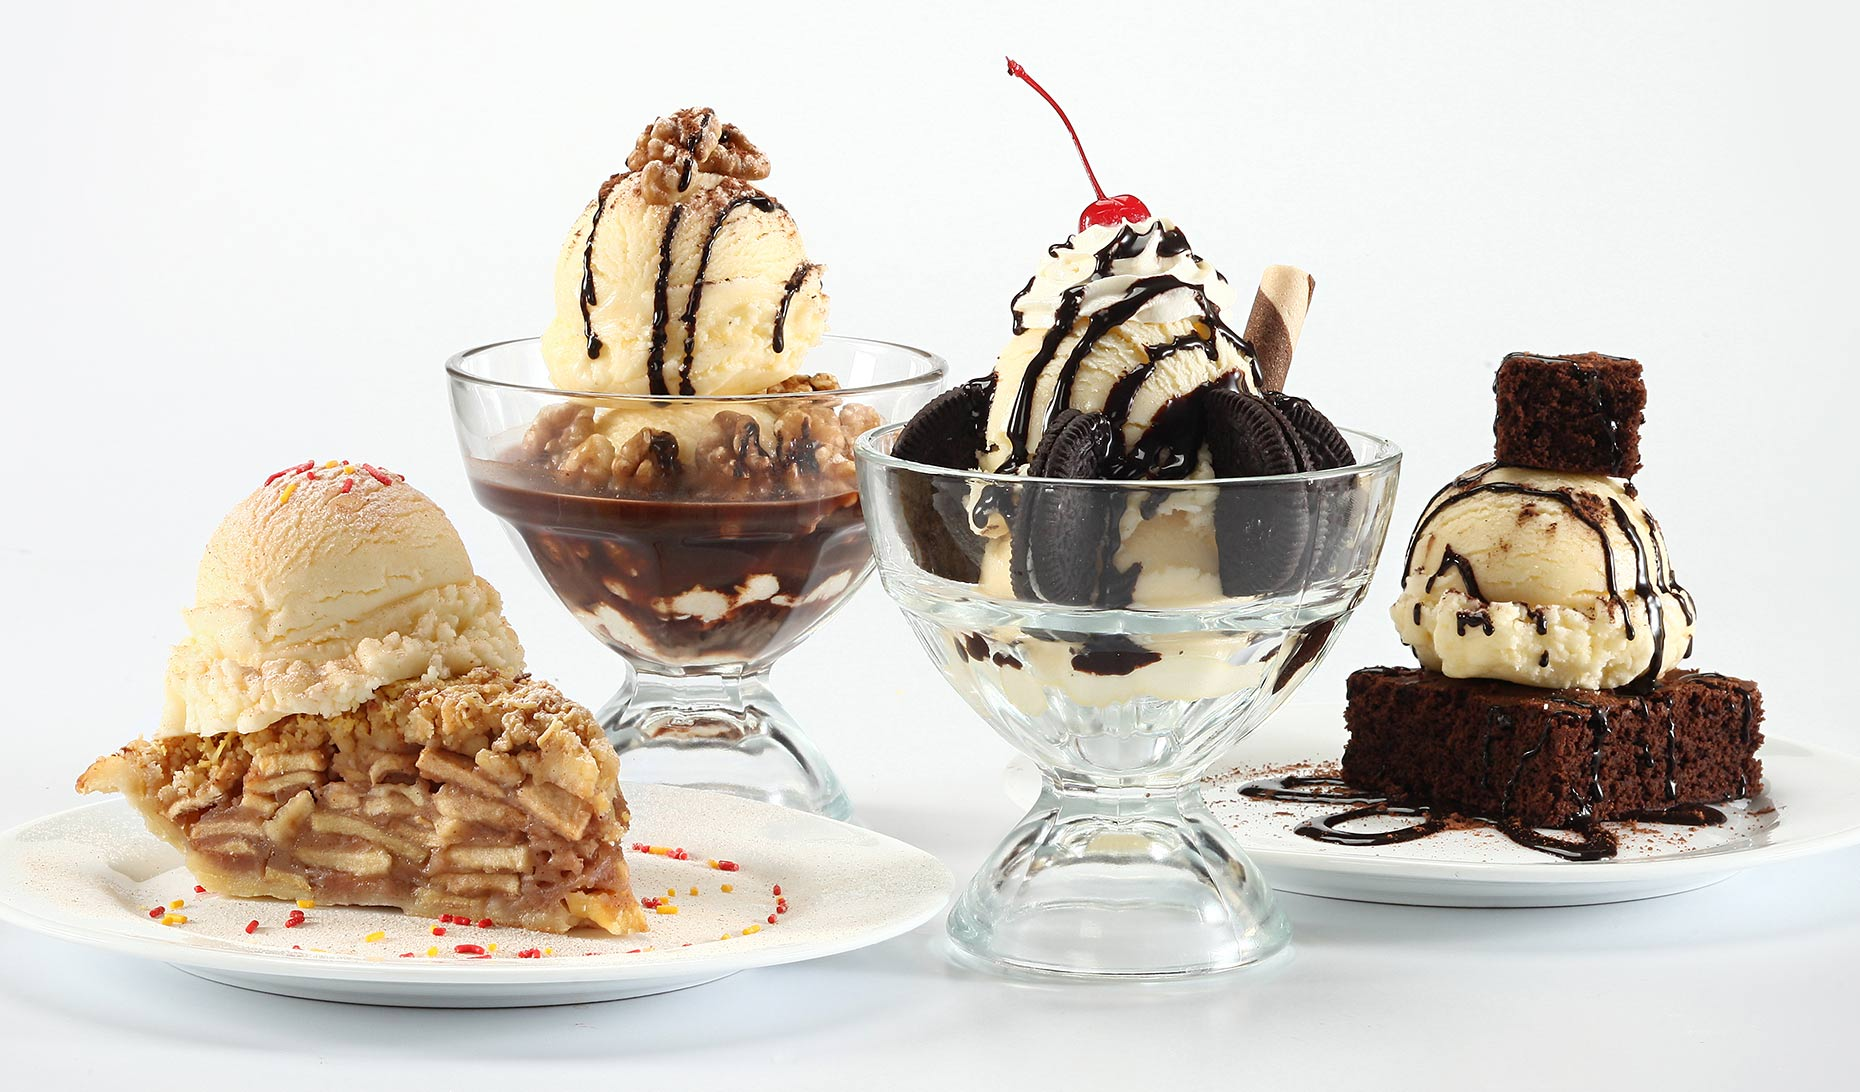 ice cream dishes on white background